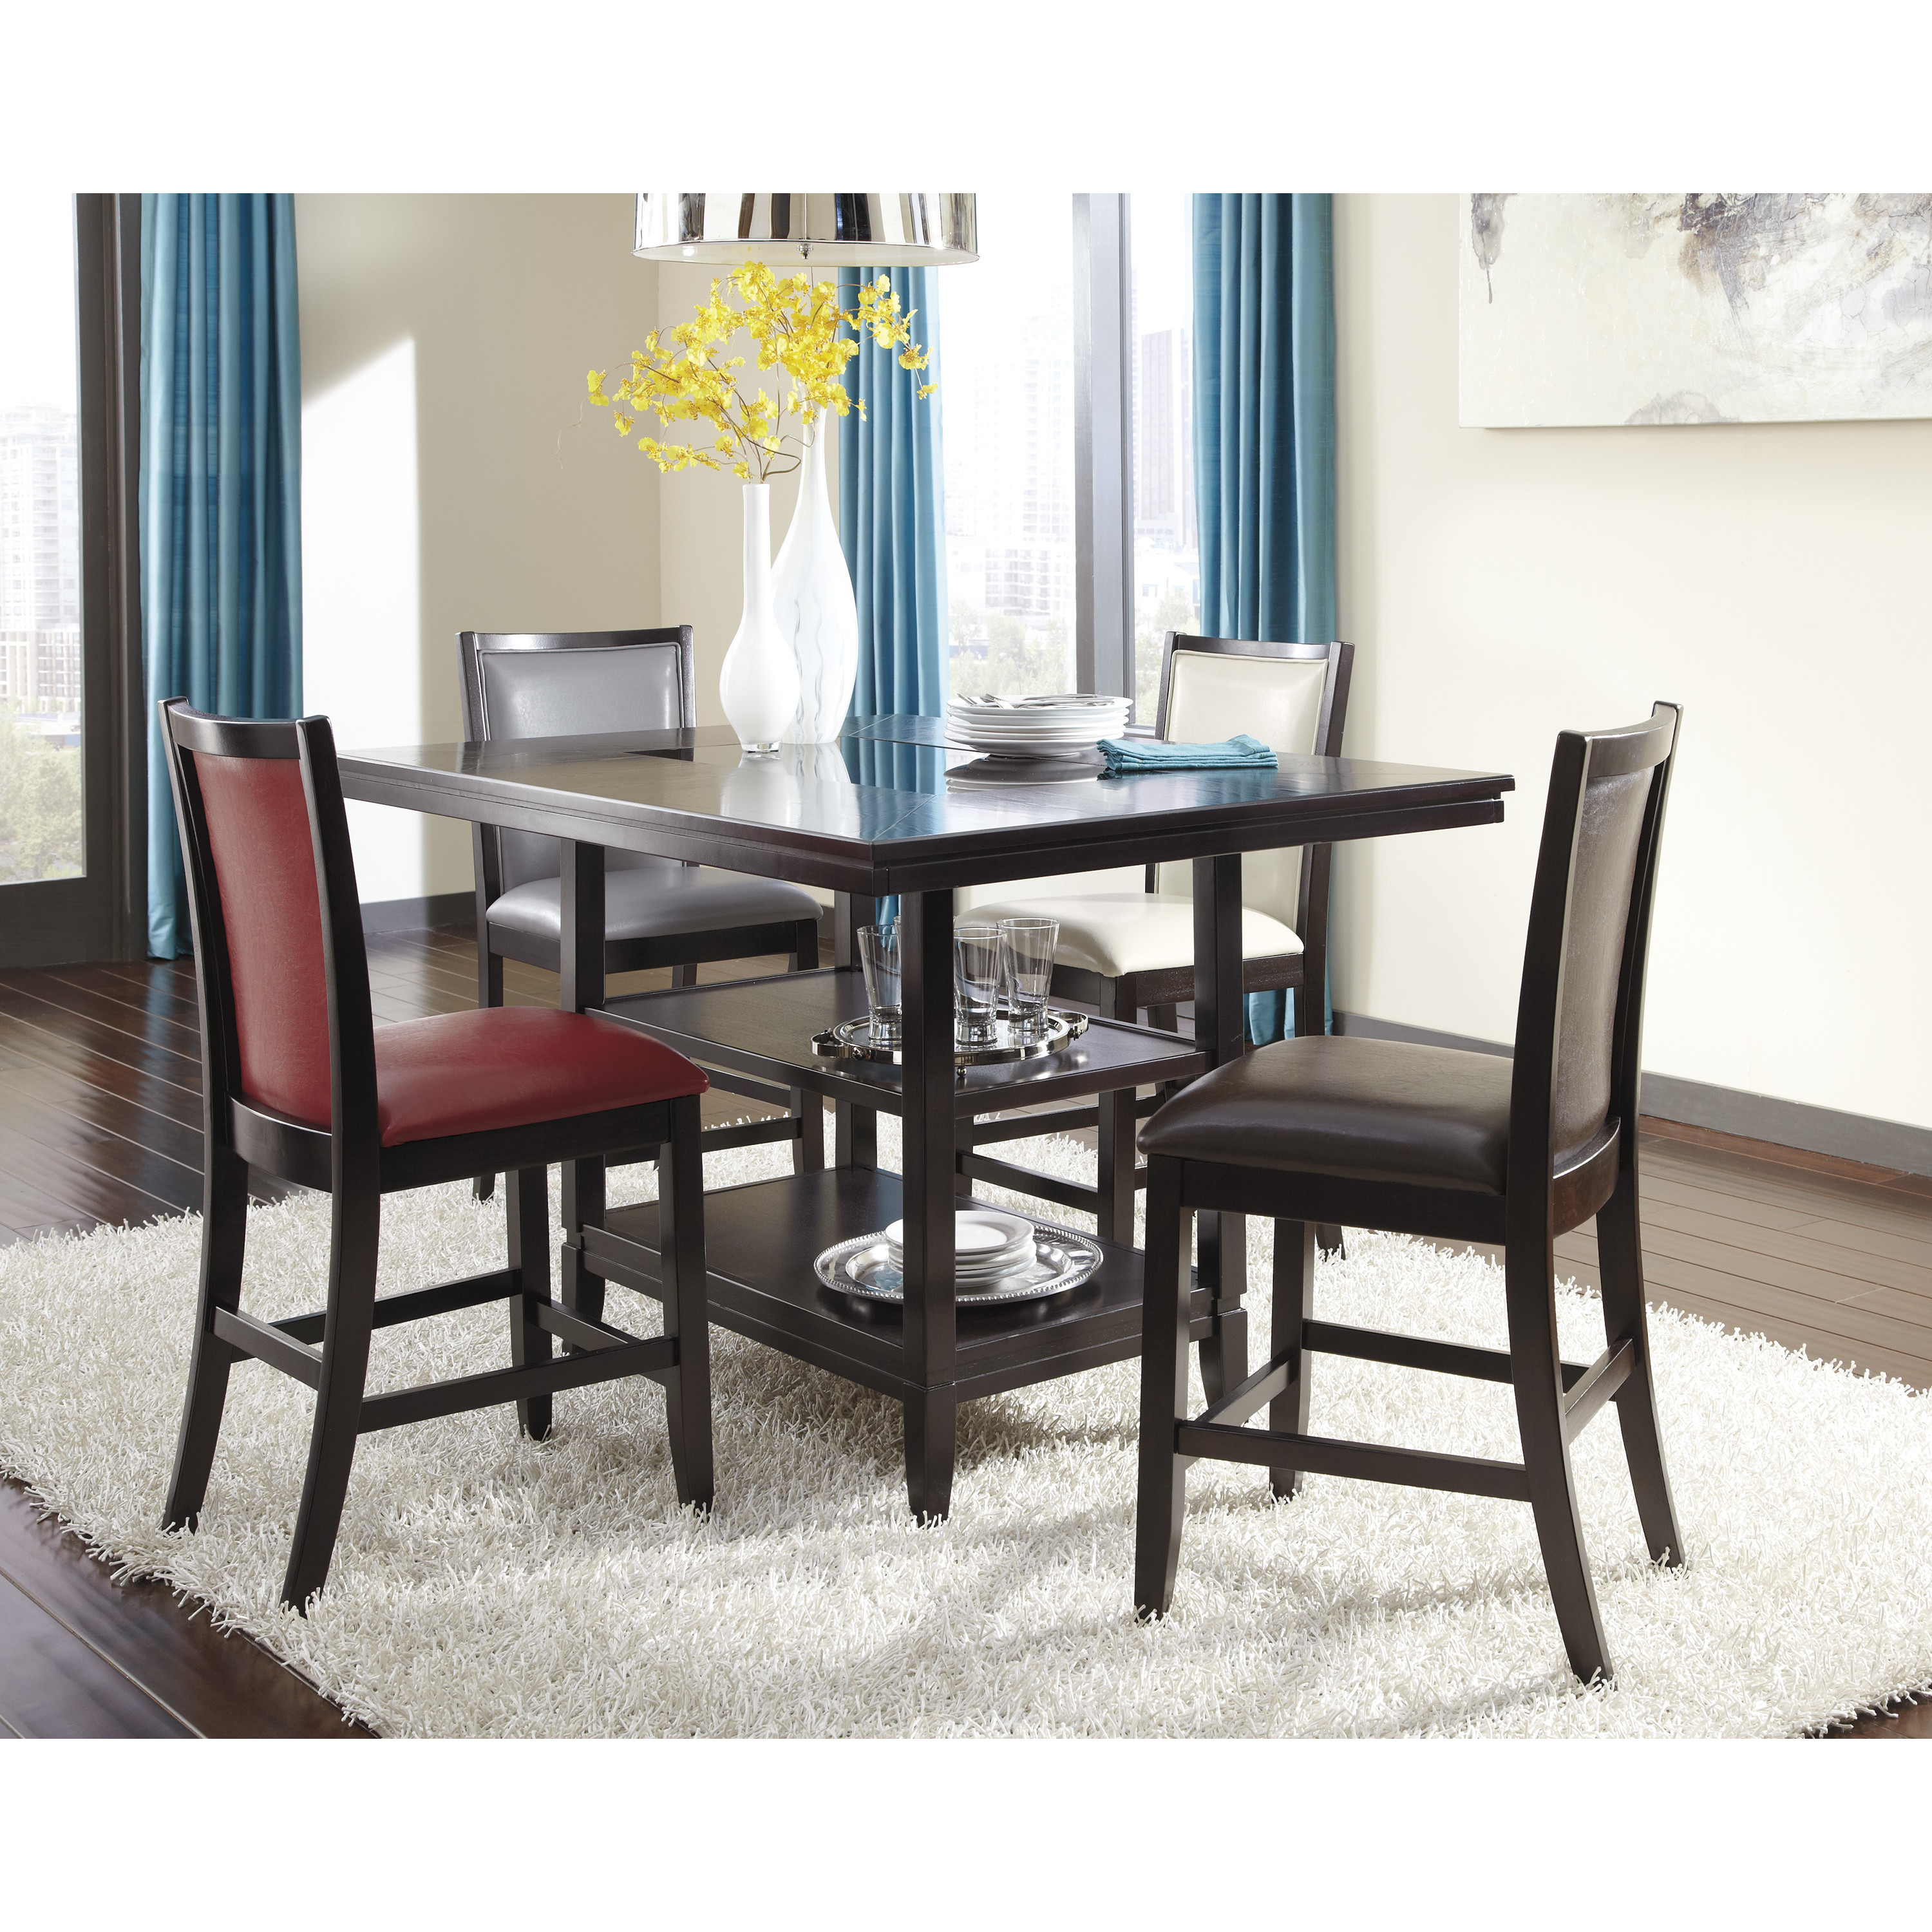 Best ideas about Dining Table Height . Save or Pin Signature Design by Ashley Trishelle Counter Height Dining Now.